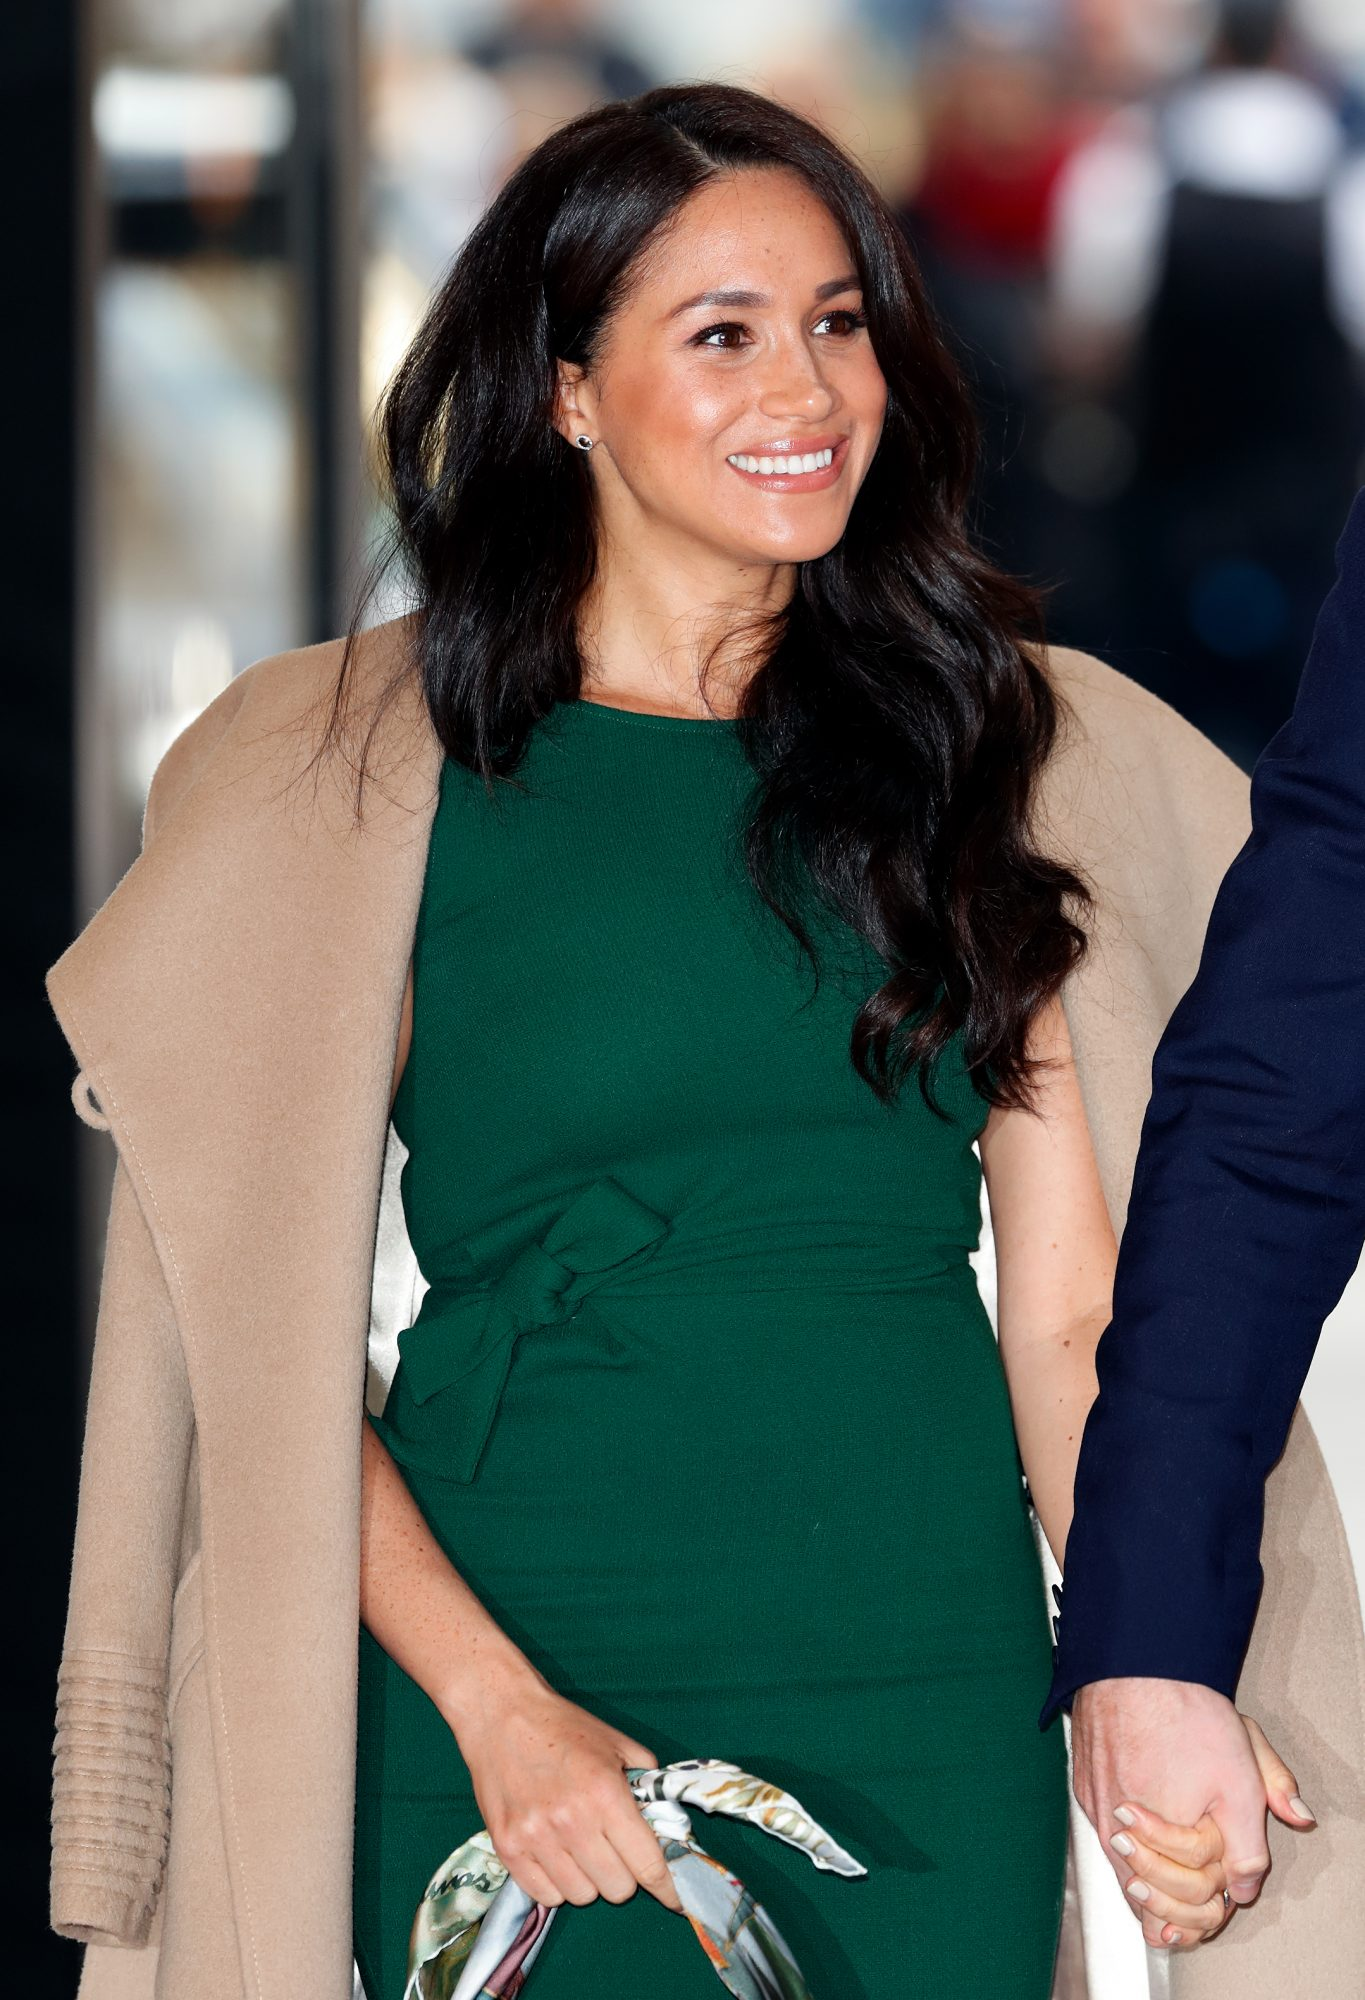 meghan markle wearing her engagement dress to royal event